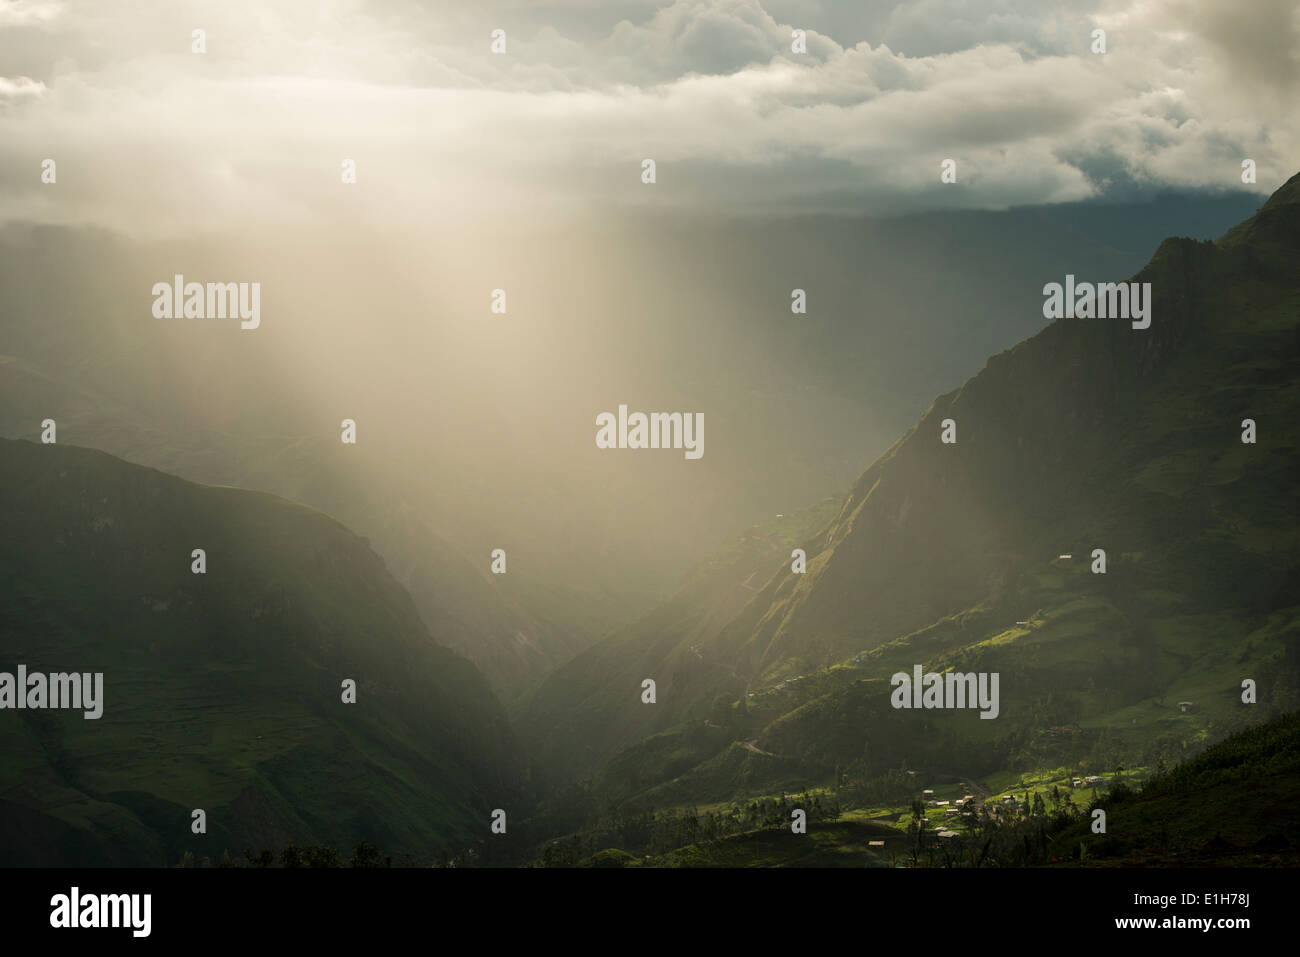 Stormy sunlight in misty valley, Sorata, Cordillera Real, Bolivia - Stock Image